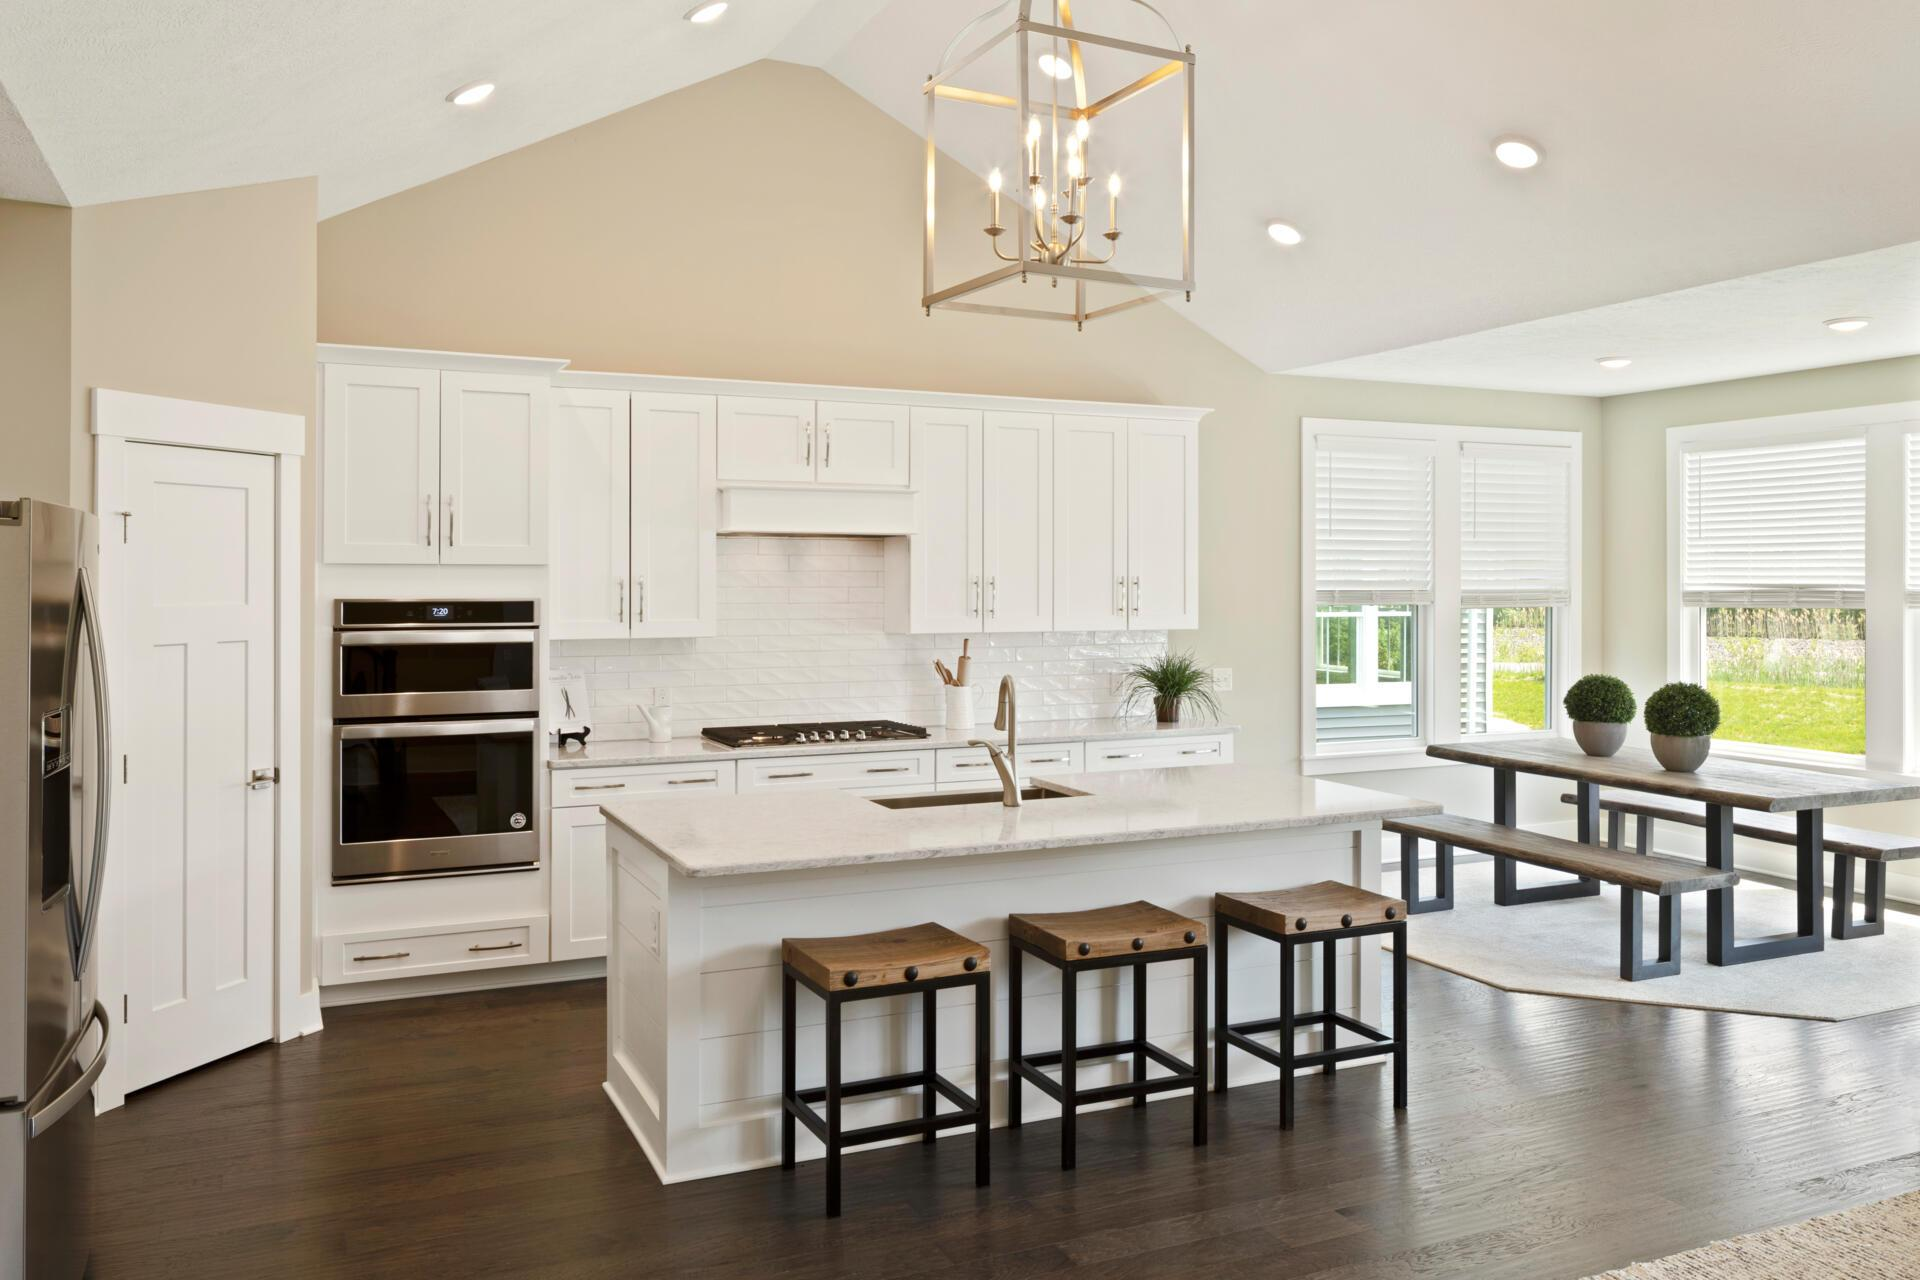 Kitchen featured in the Sarasota By Drees Homes in Cleveland, OH